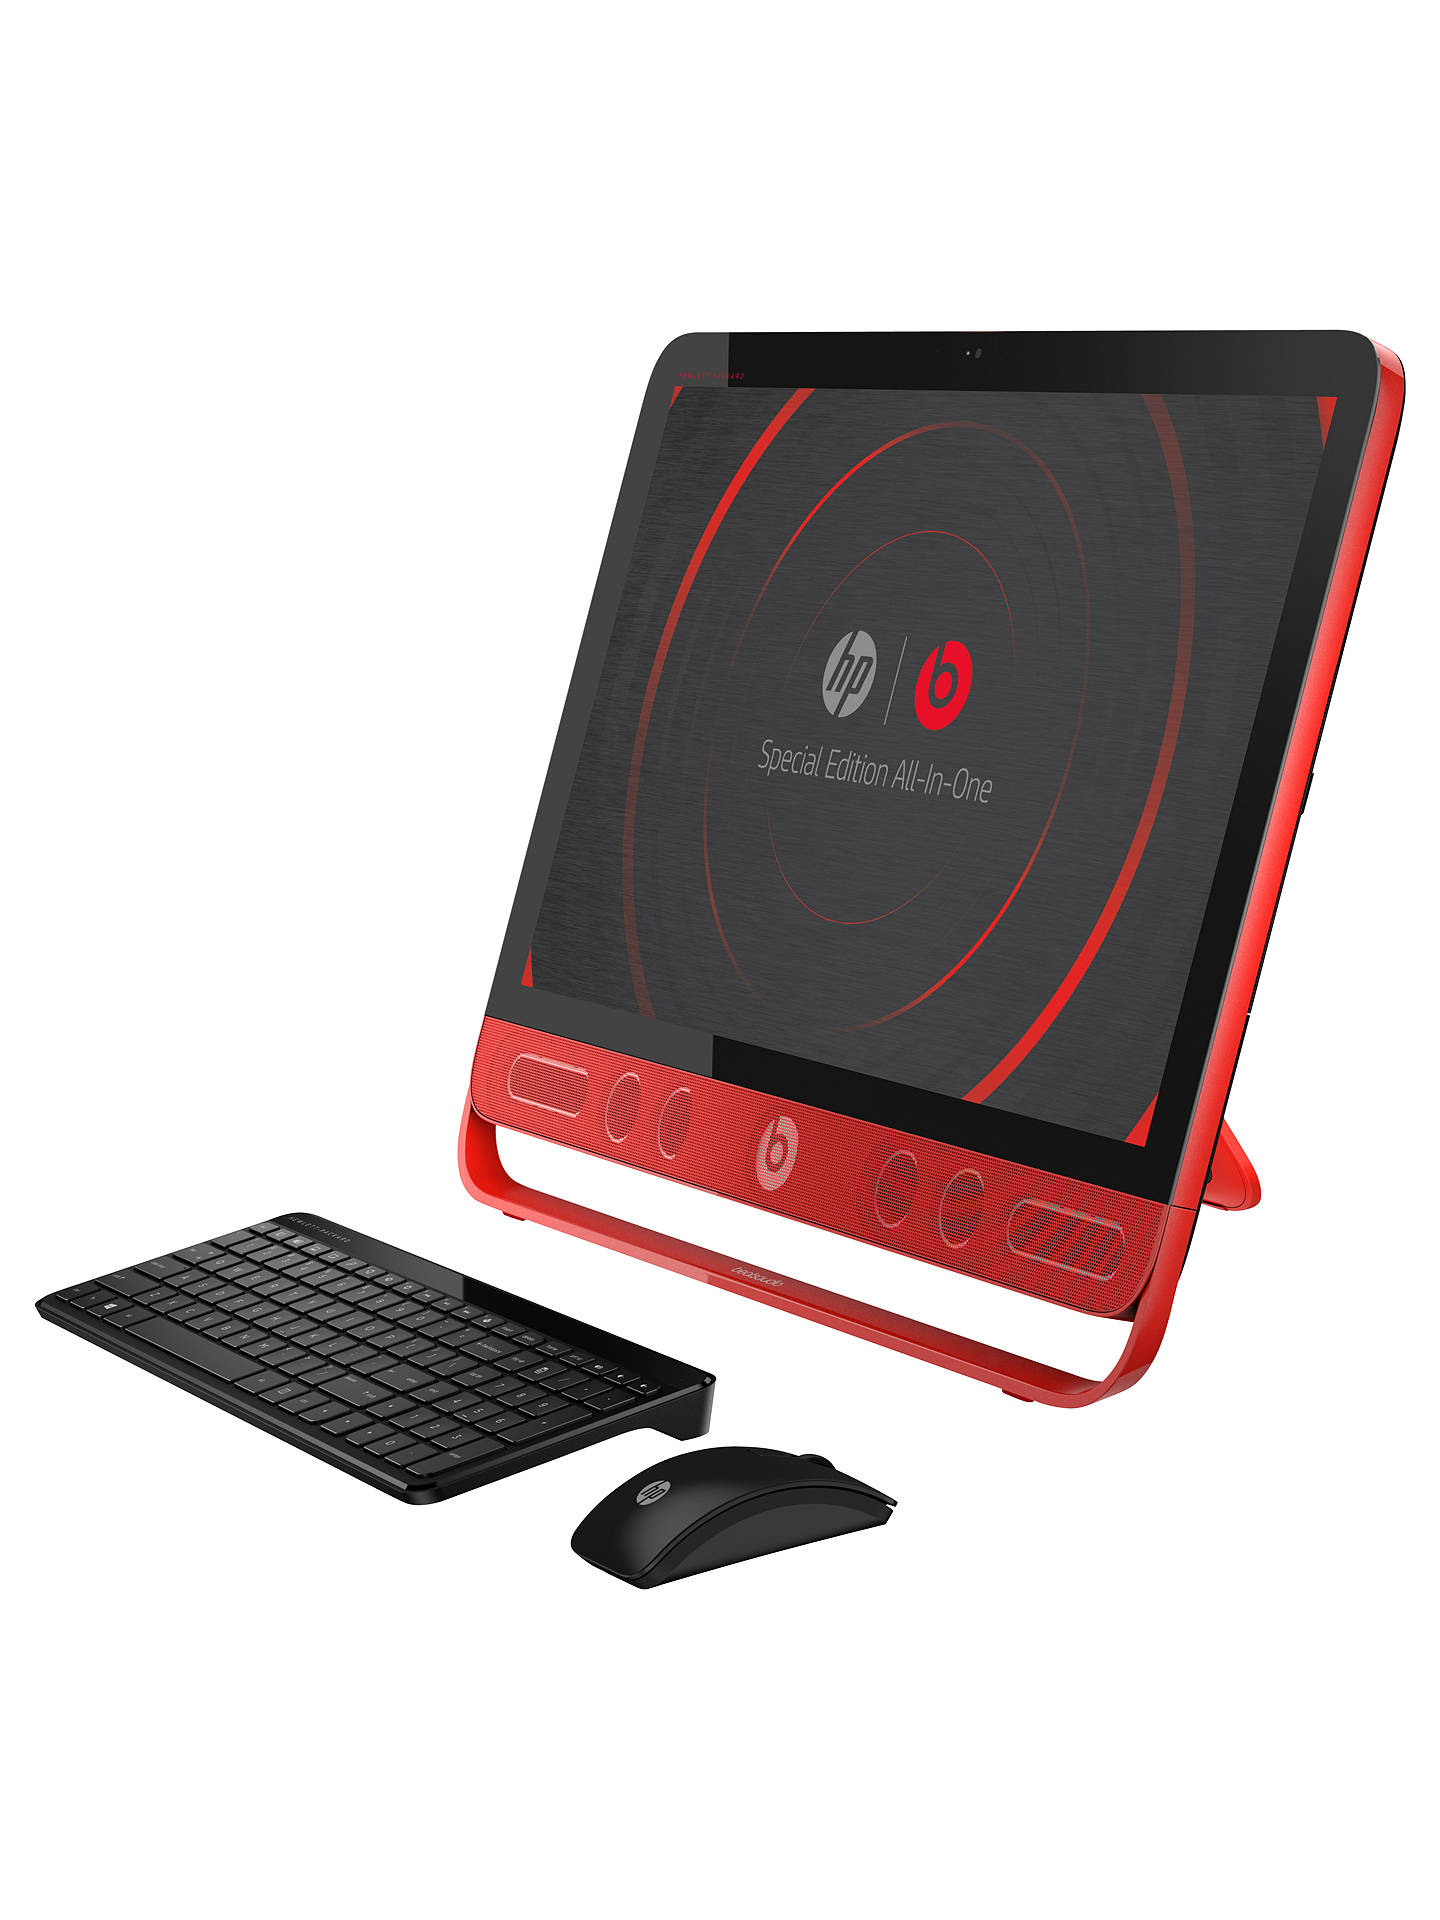 "Buy HP Envy Beats Edition 23-n001na All-in-One Desktop PC, Intel Core i7, 8GB RAM, 1TB, 23"" Touch Screen, Black Online at johnlewis.com"